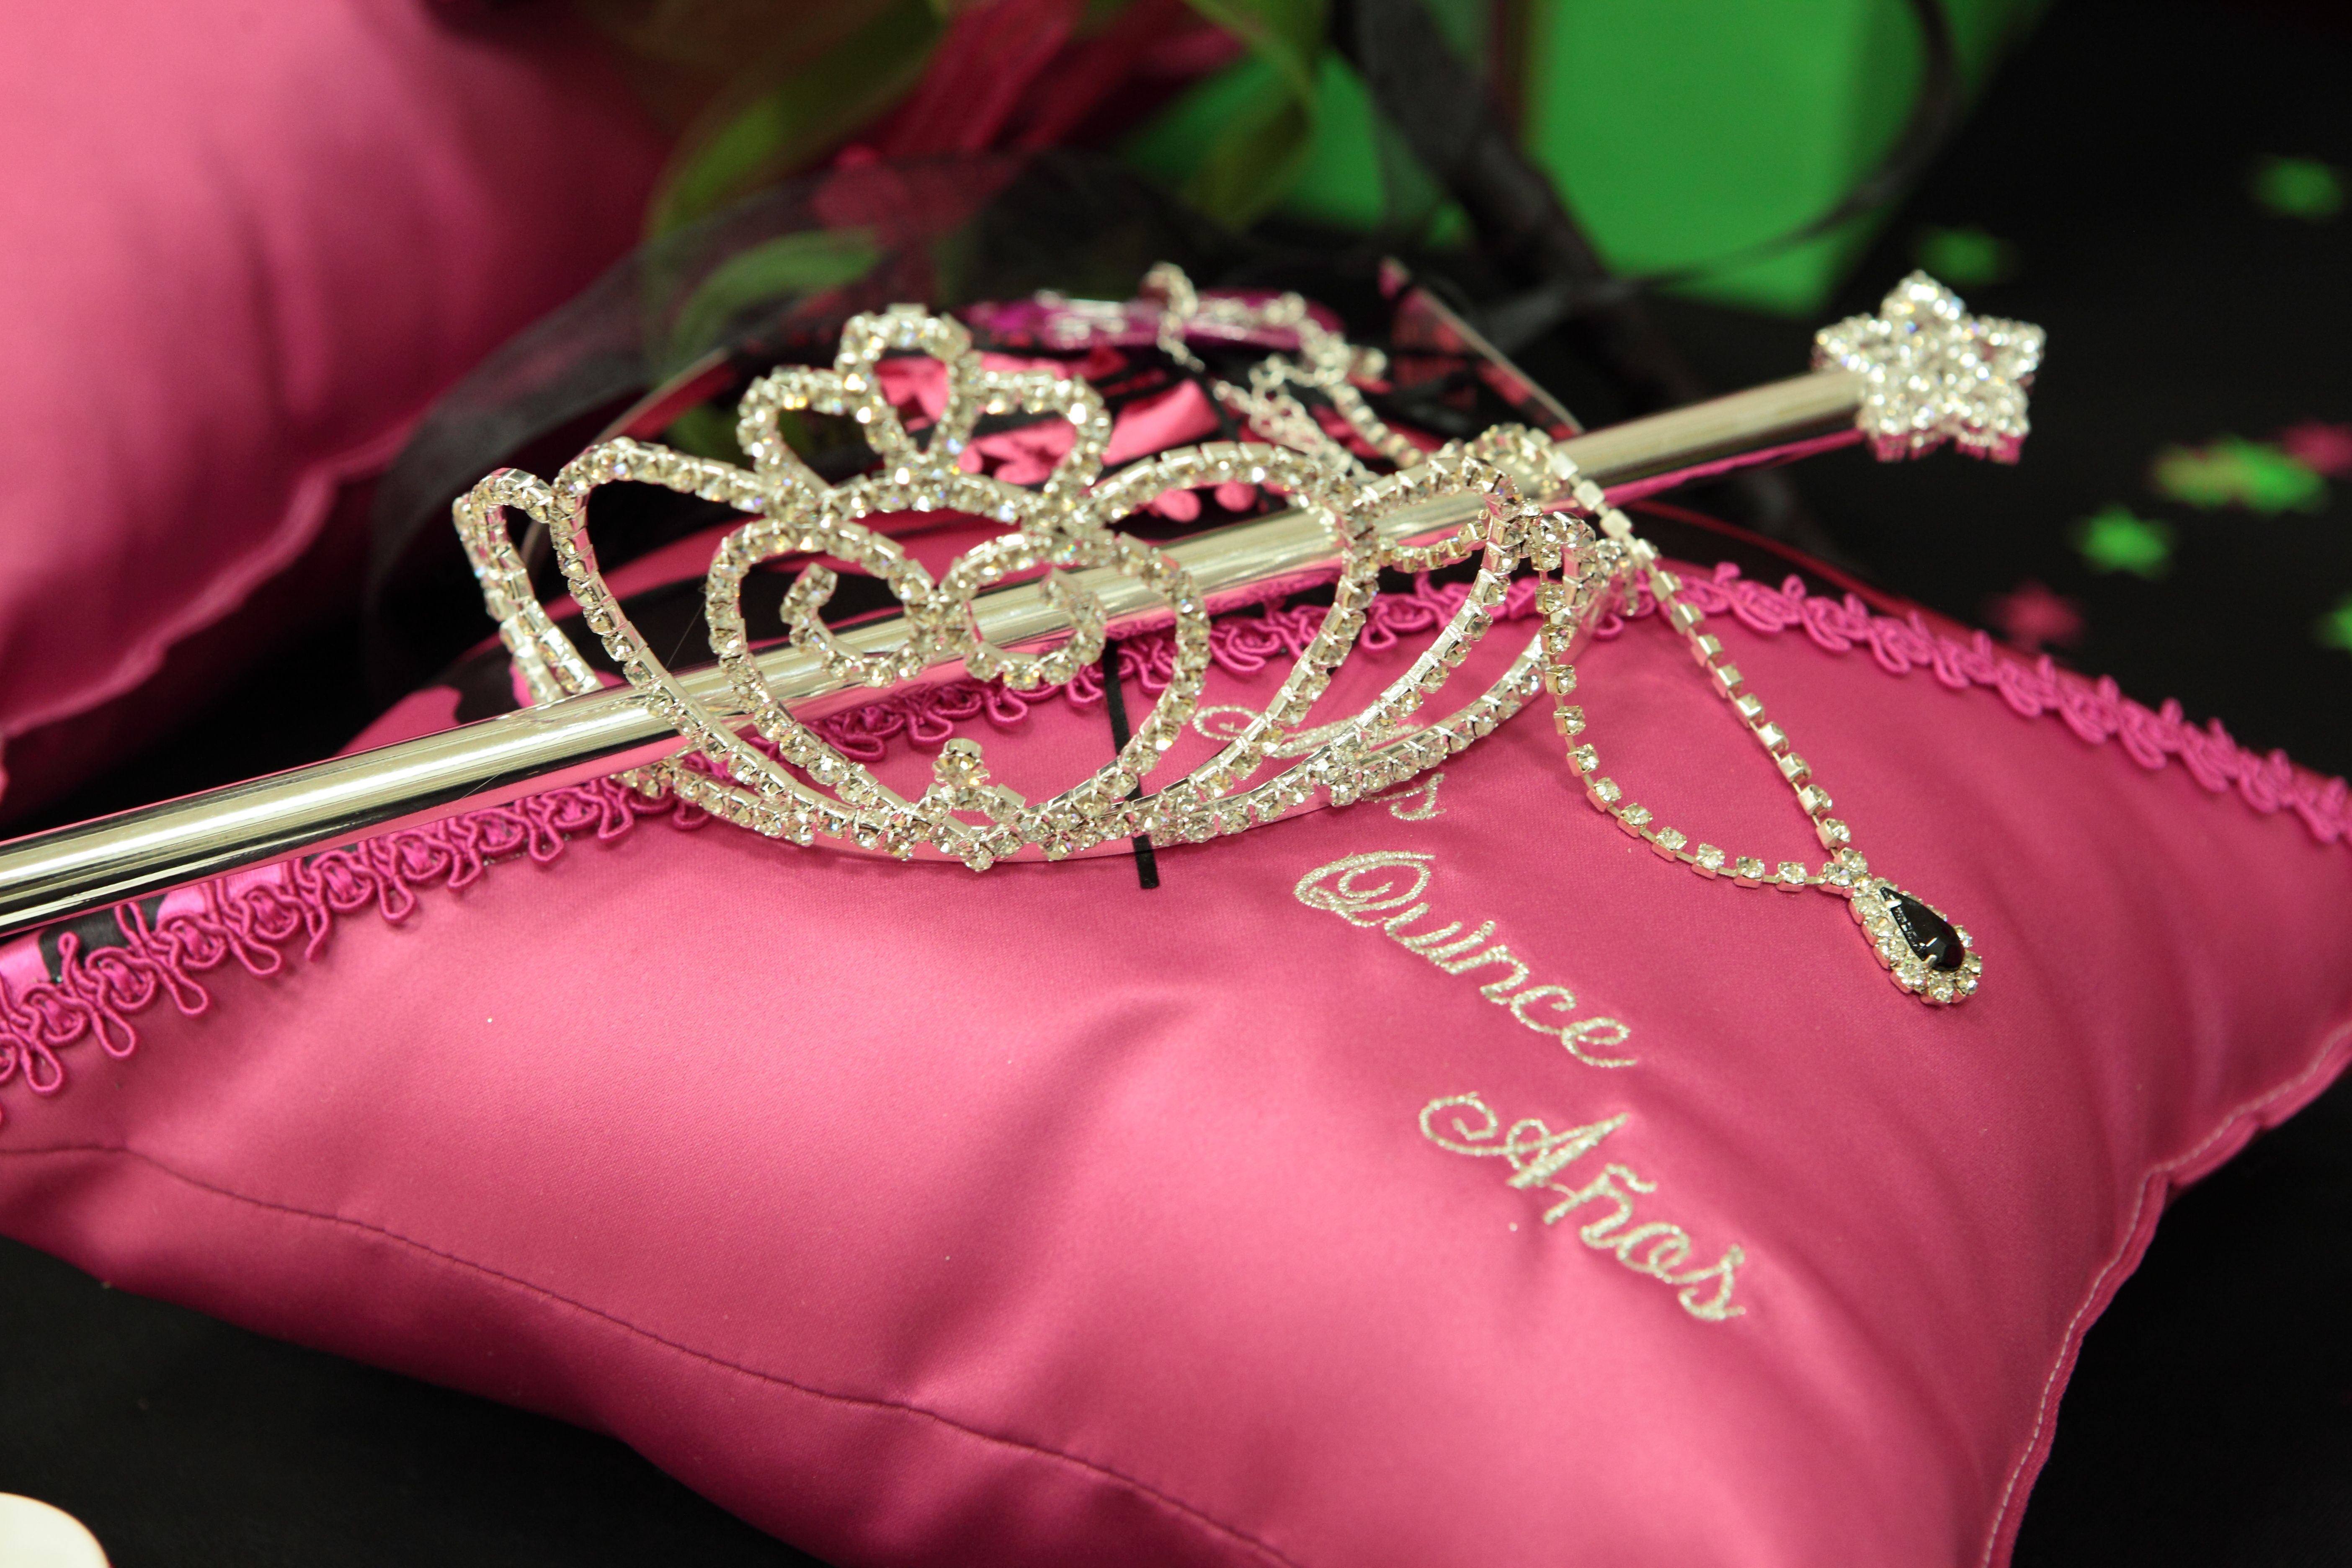 New! Cinderella//Quinceanera//Princess Carriage Necklaces Wholesale Lot of 15